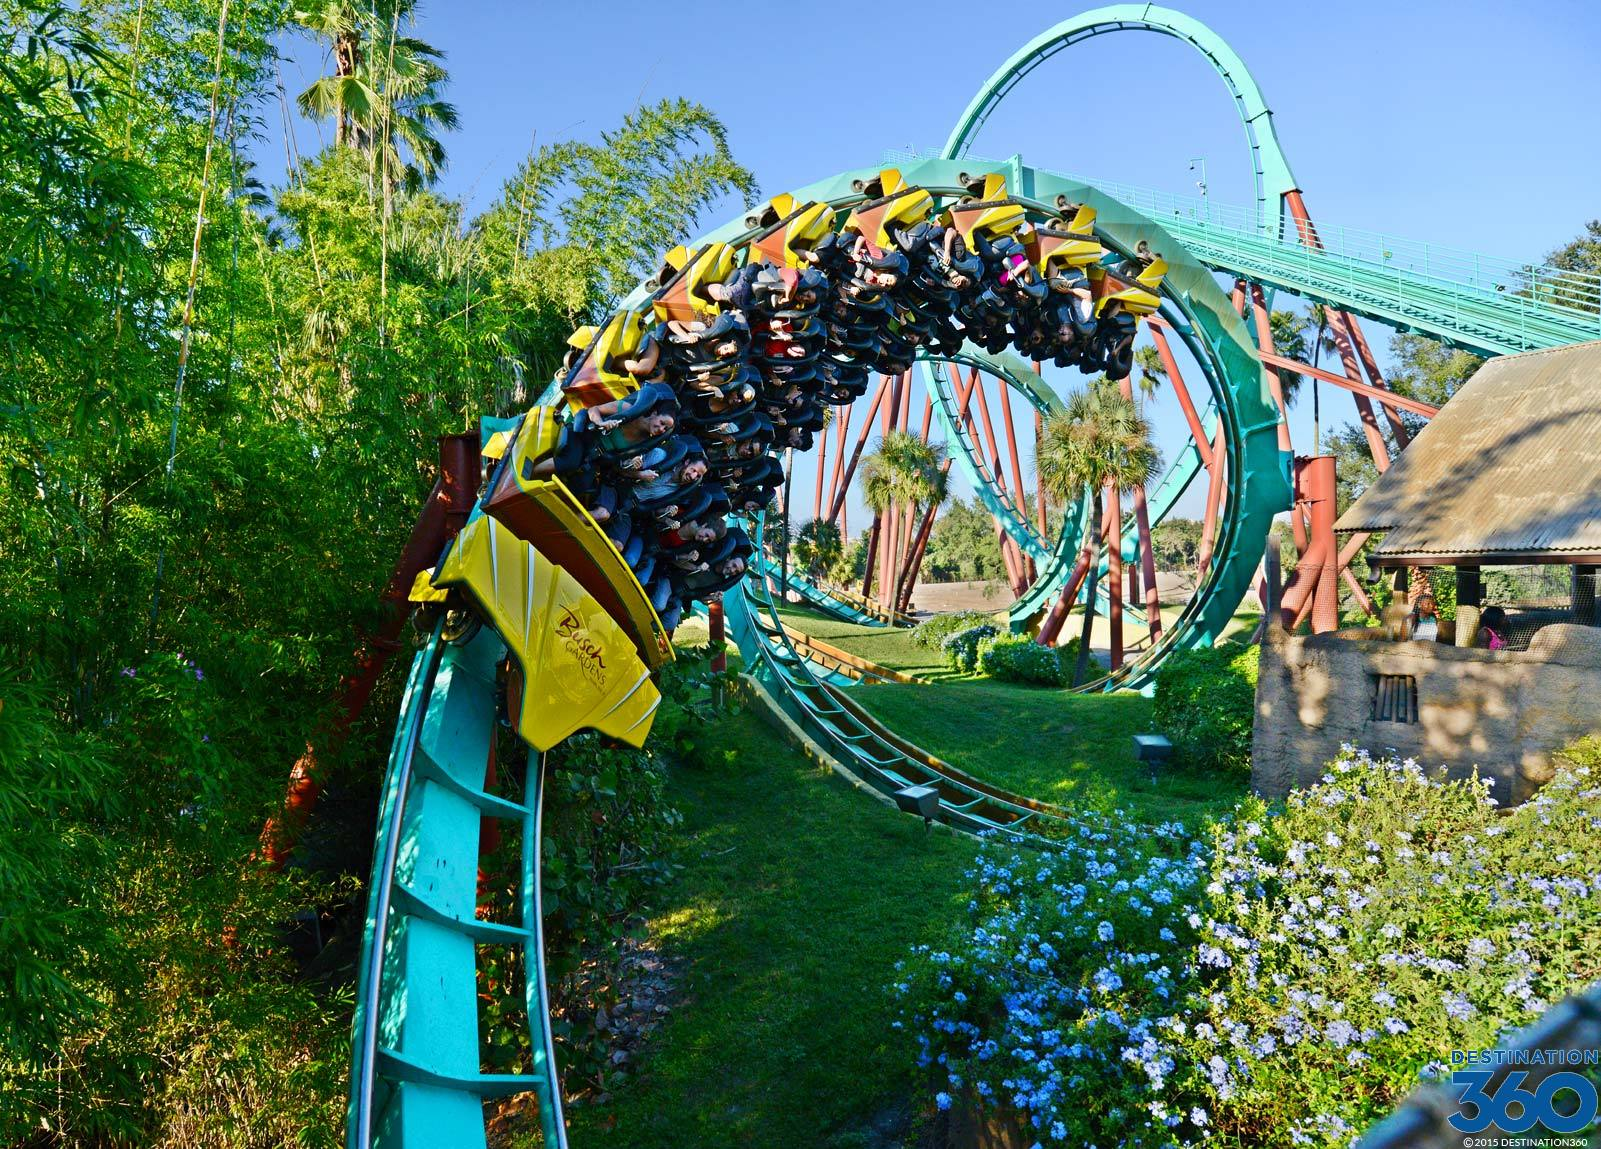 Busch gardens tours busch gardens safari tour What time does busch gardens close today